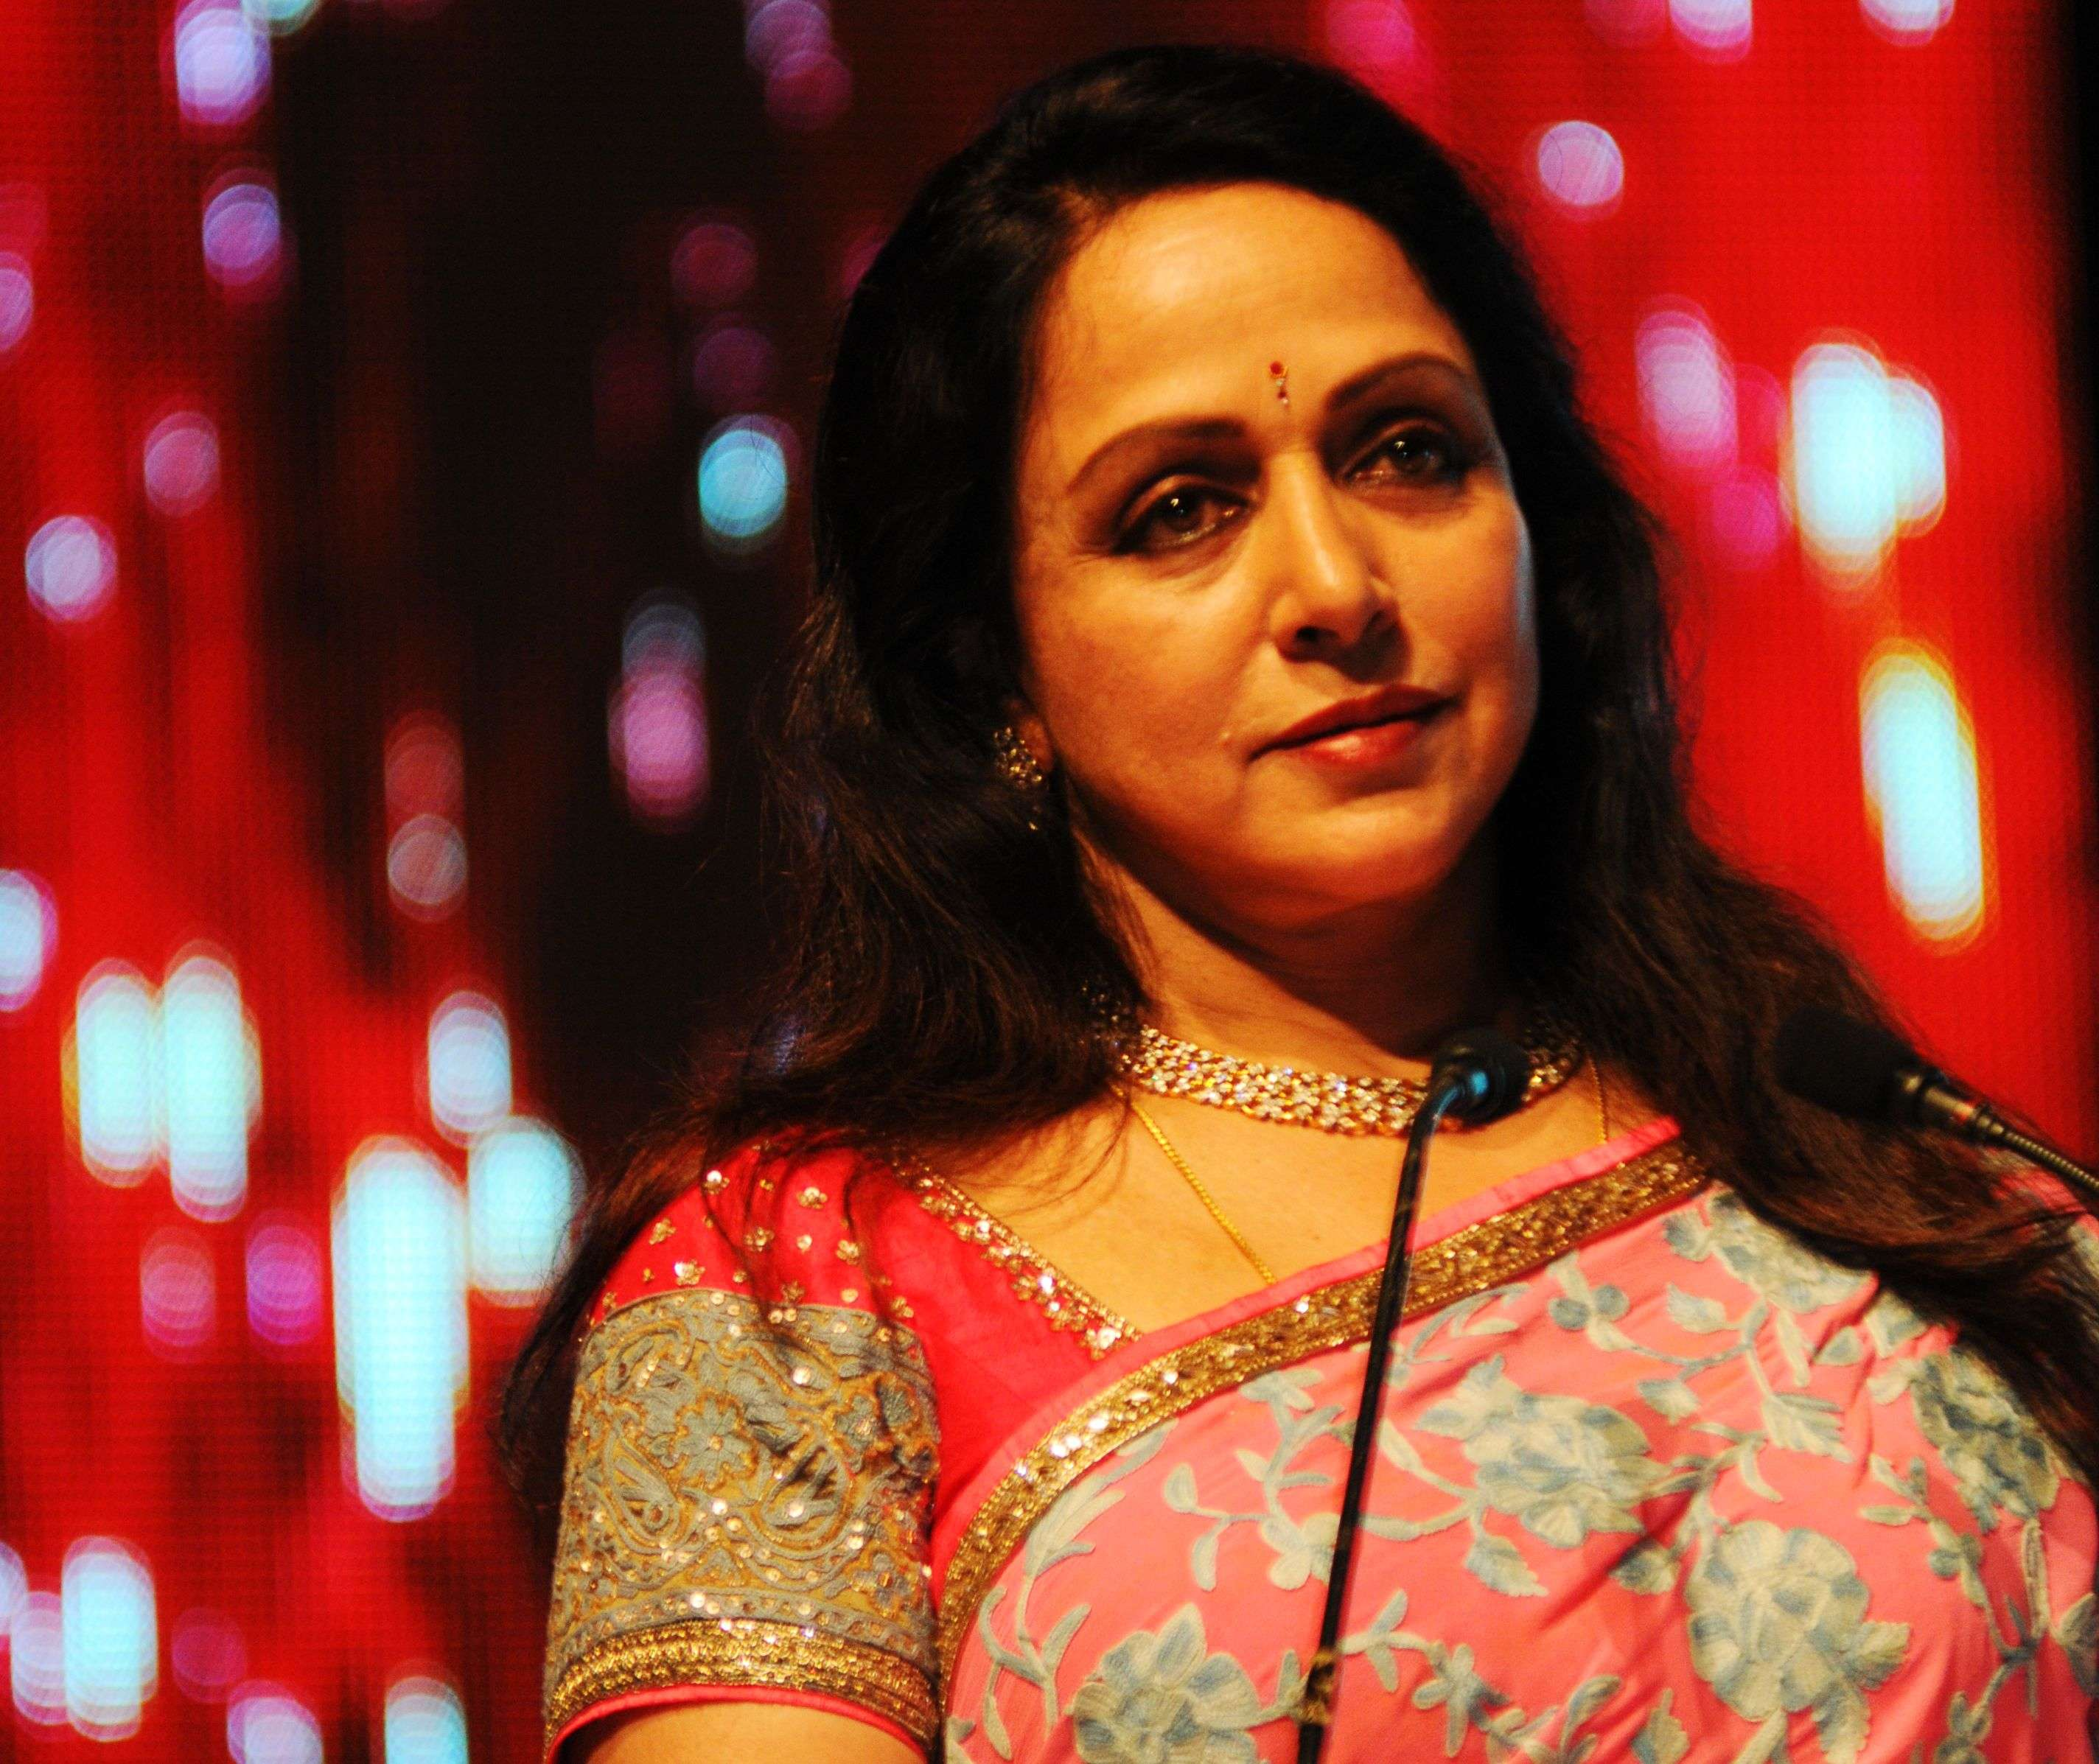 Hema Malini Rishi Kapoor Shabana Azmi Wish Speedy Recovery To Hema Malini Hindi Movie News Times Of India